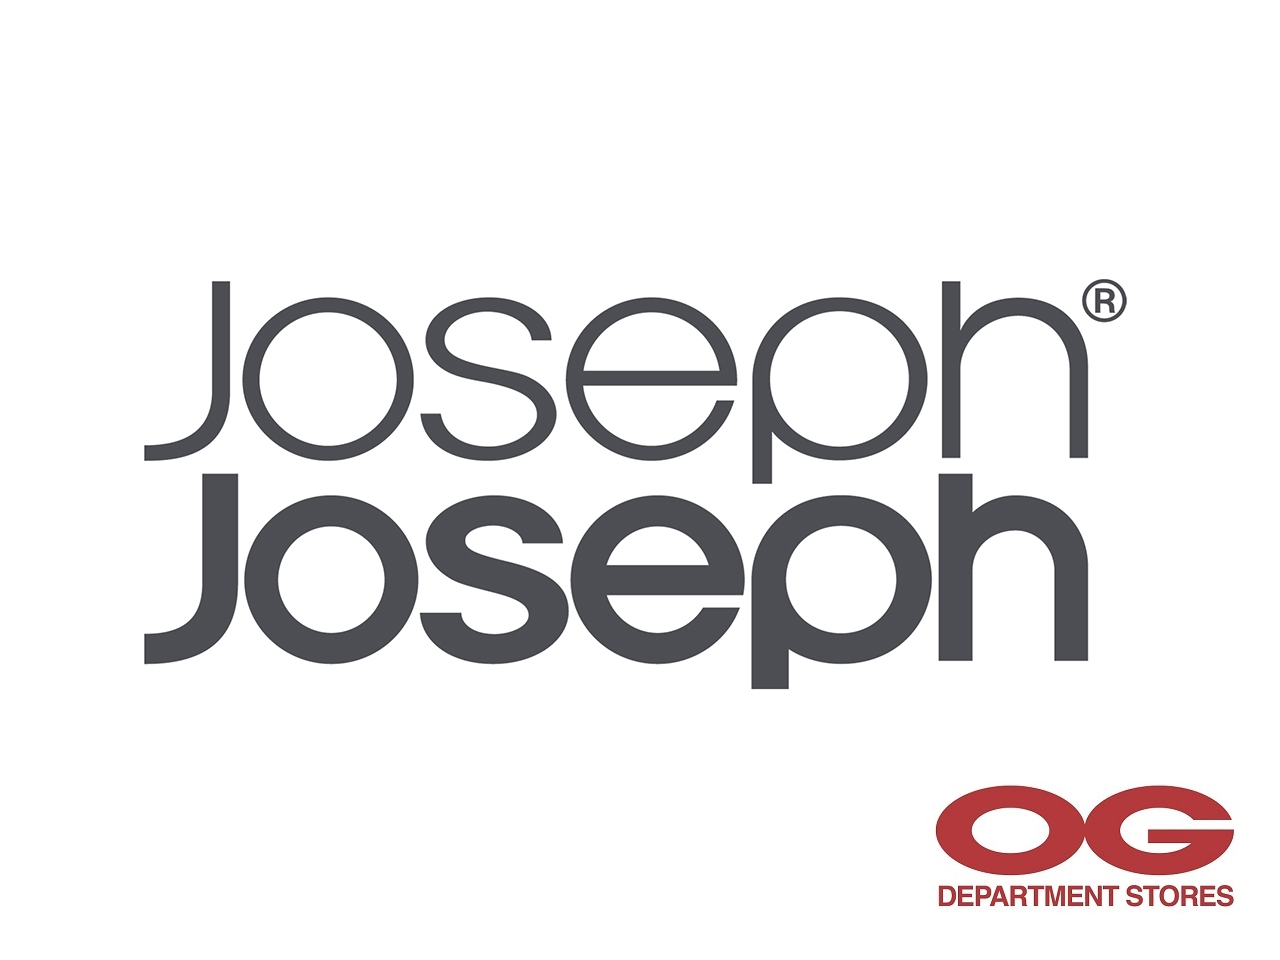 JOSEPH JOSEPH All Regular-Priced Items @ 30% Off